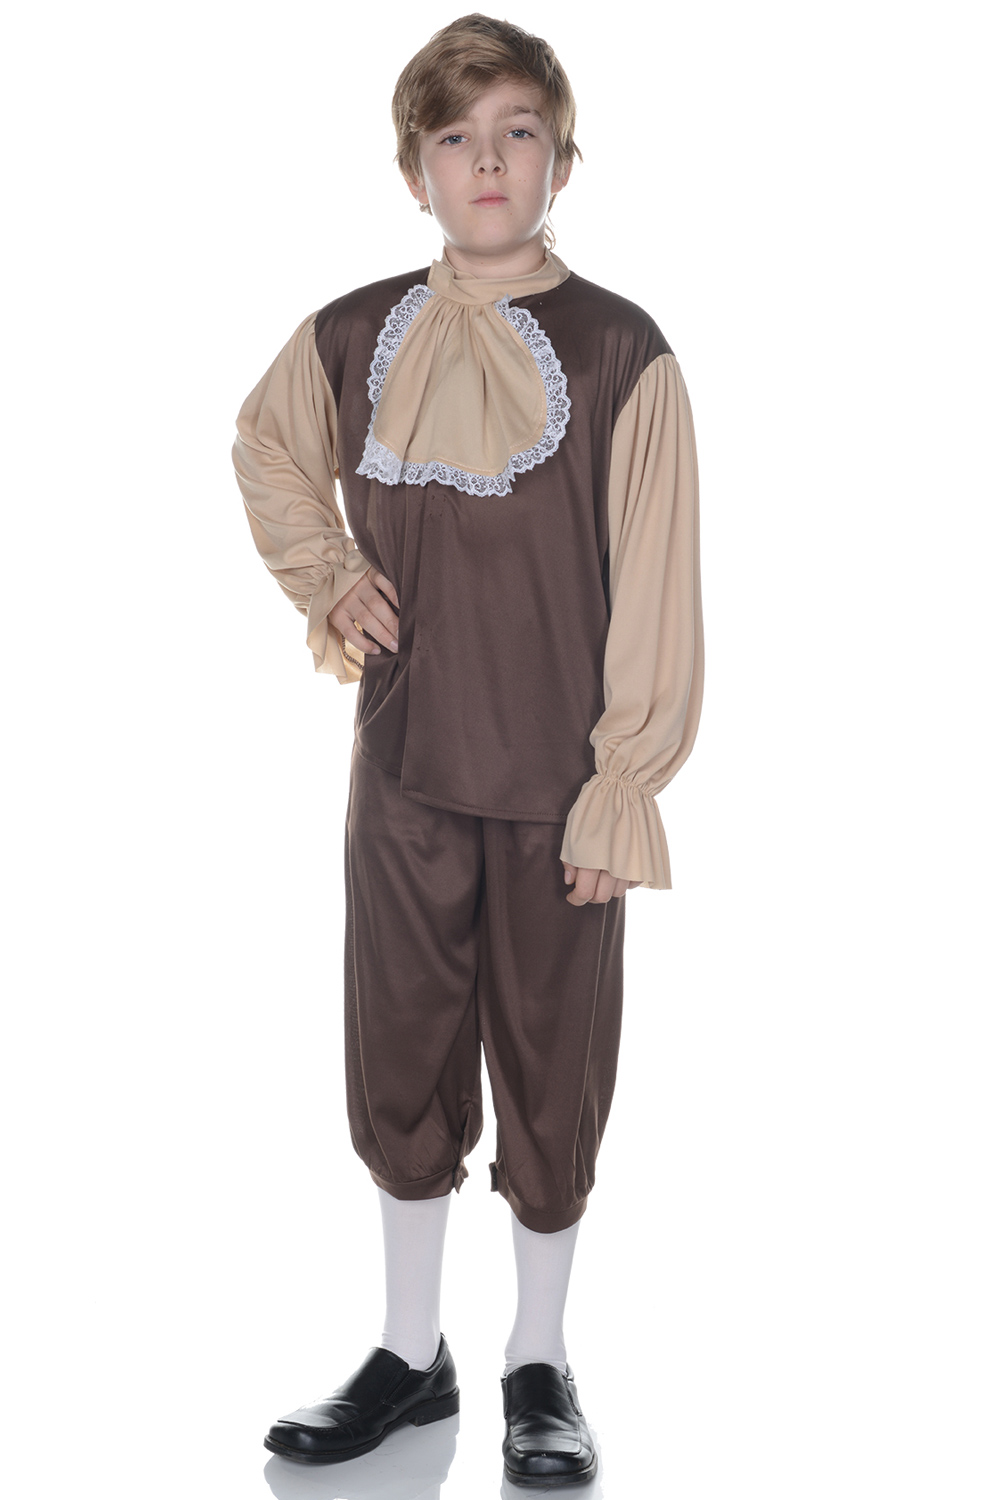 Childrens historical costumes purecostumes colonial boy child costume solutioingenieria Image collections